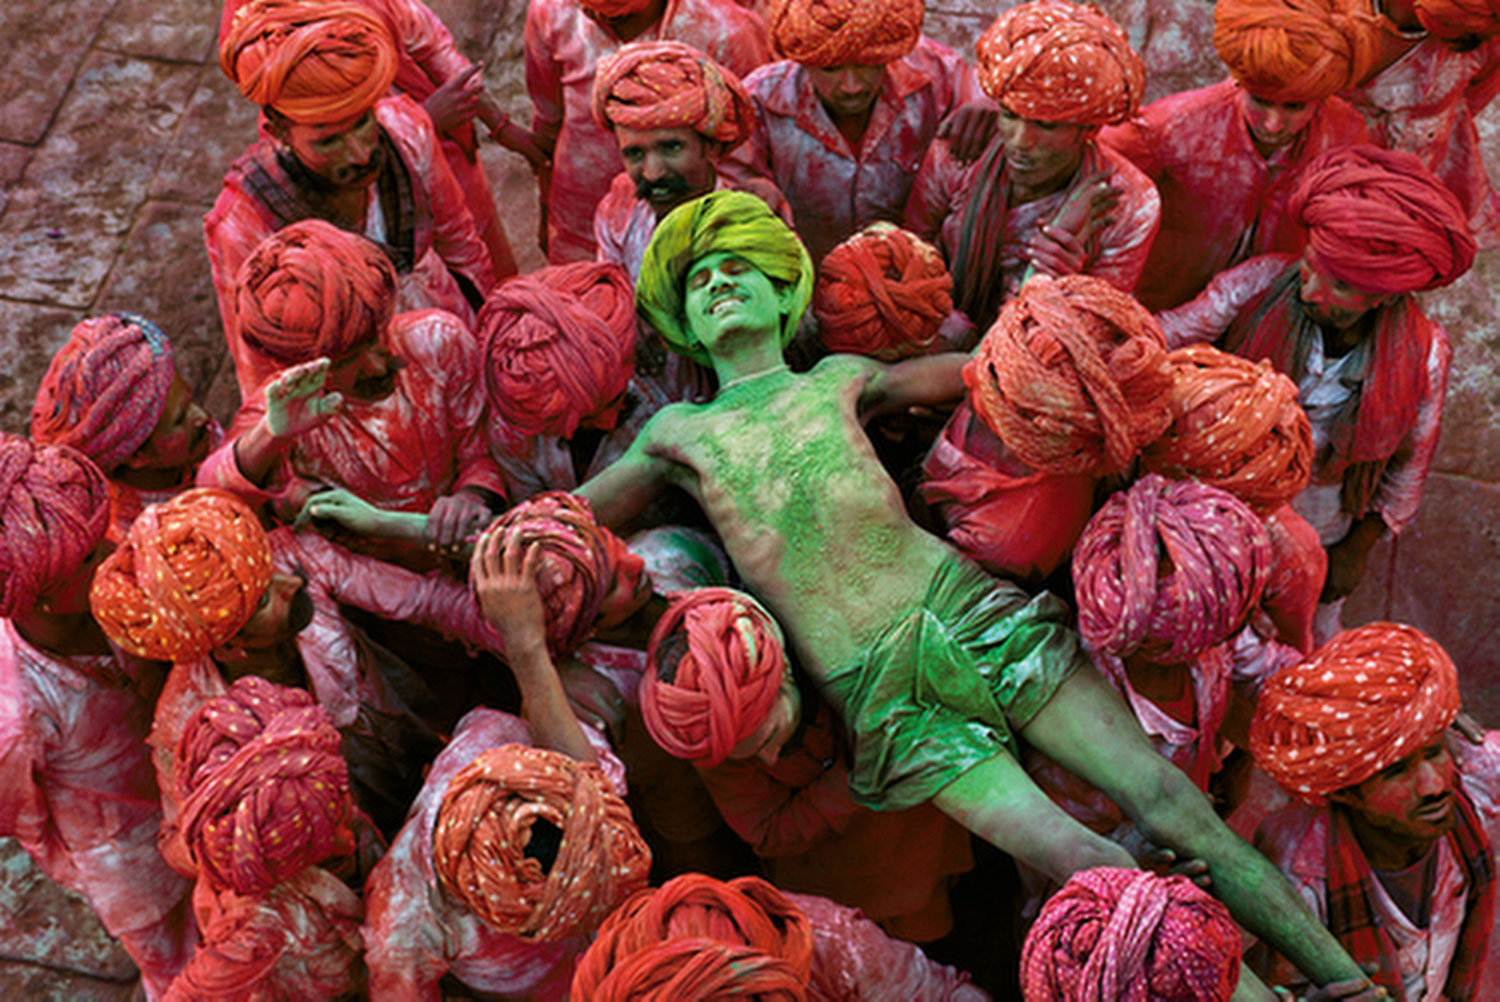 Rajasthan, 1996. A crowd carries a man during the Holi festival. Photograph by Steve McCurry